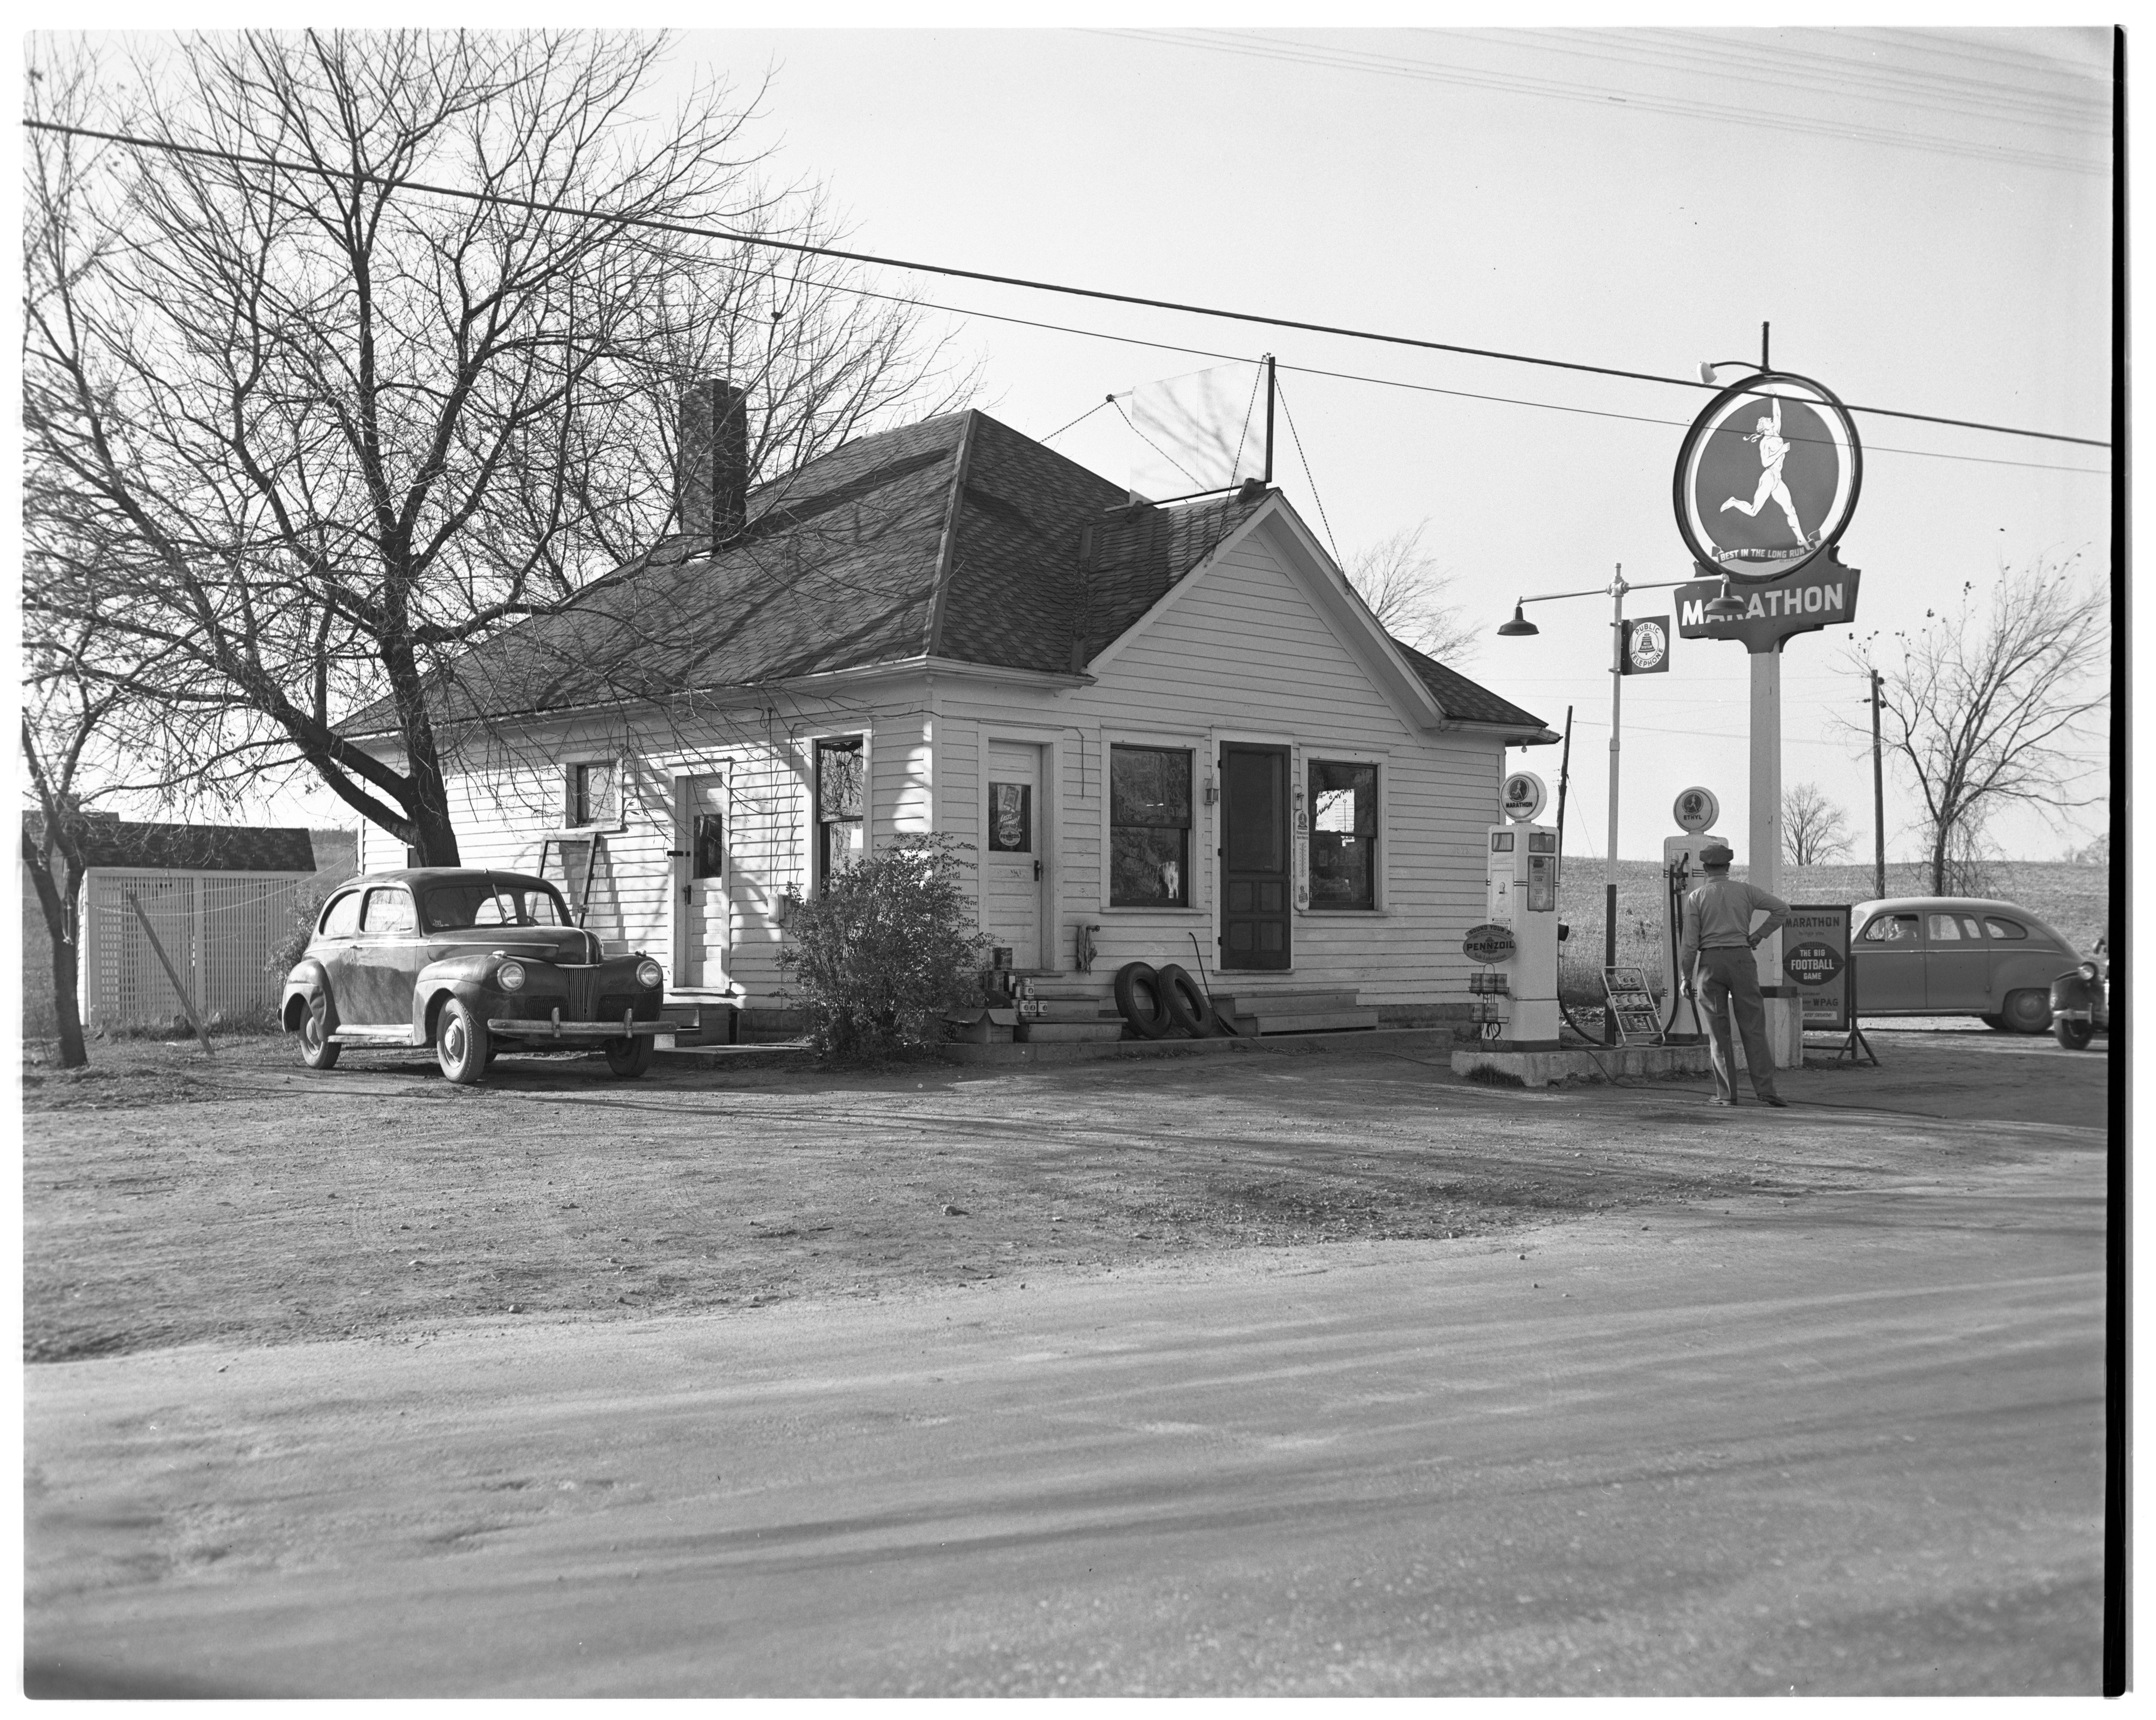 Groceries and filling station, November 1951 image